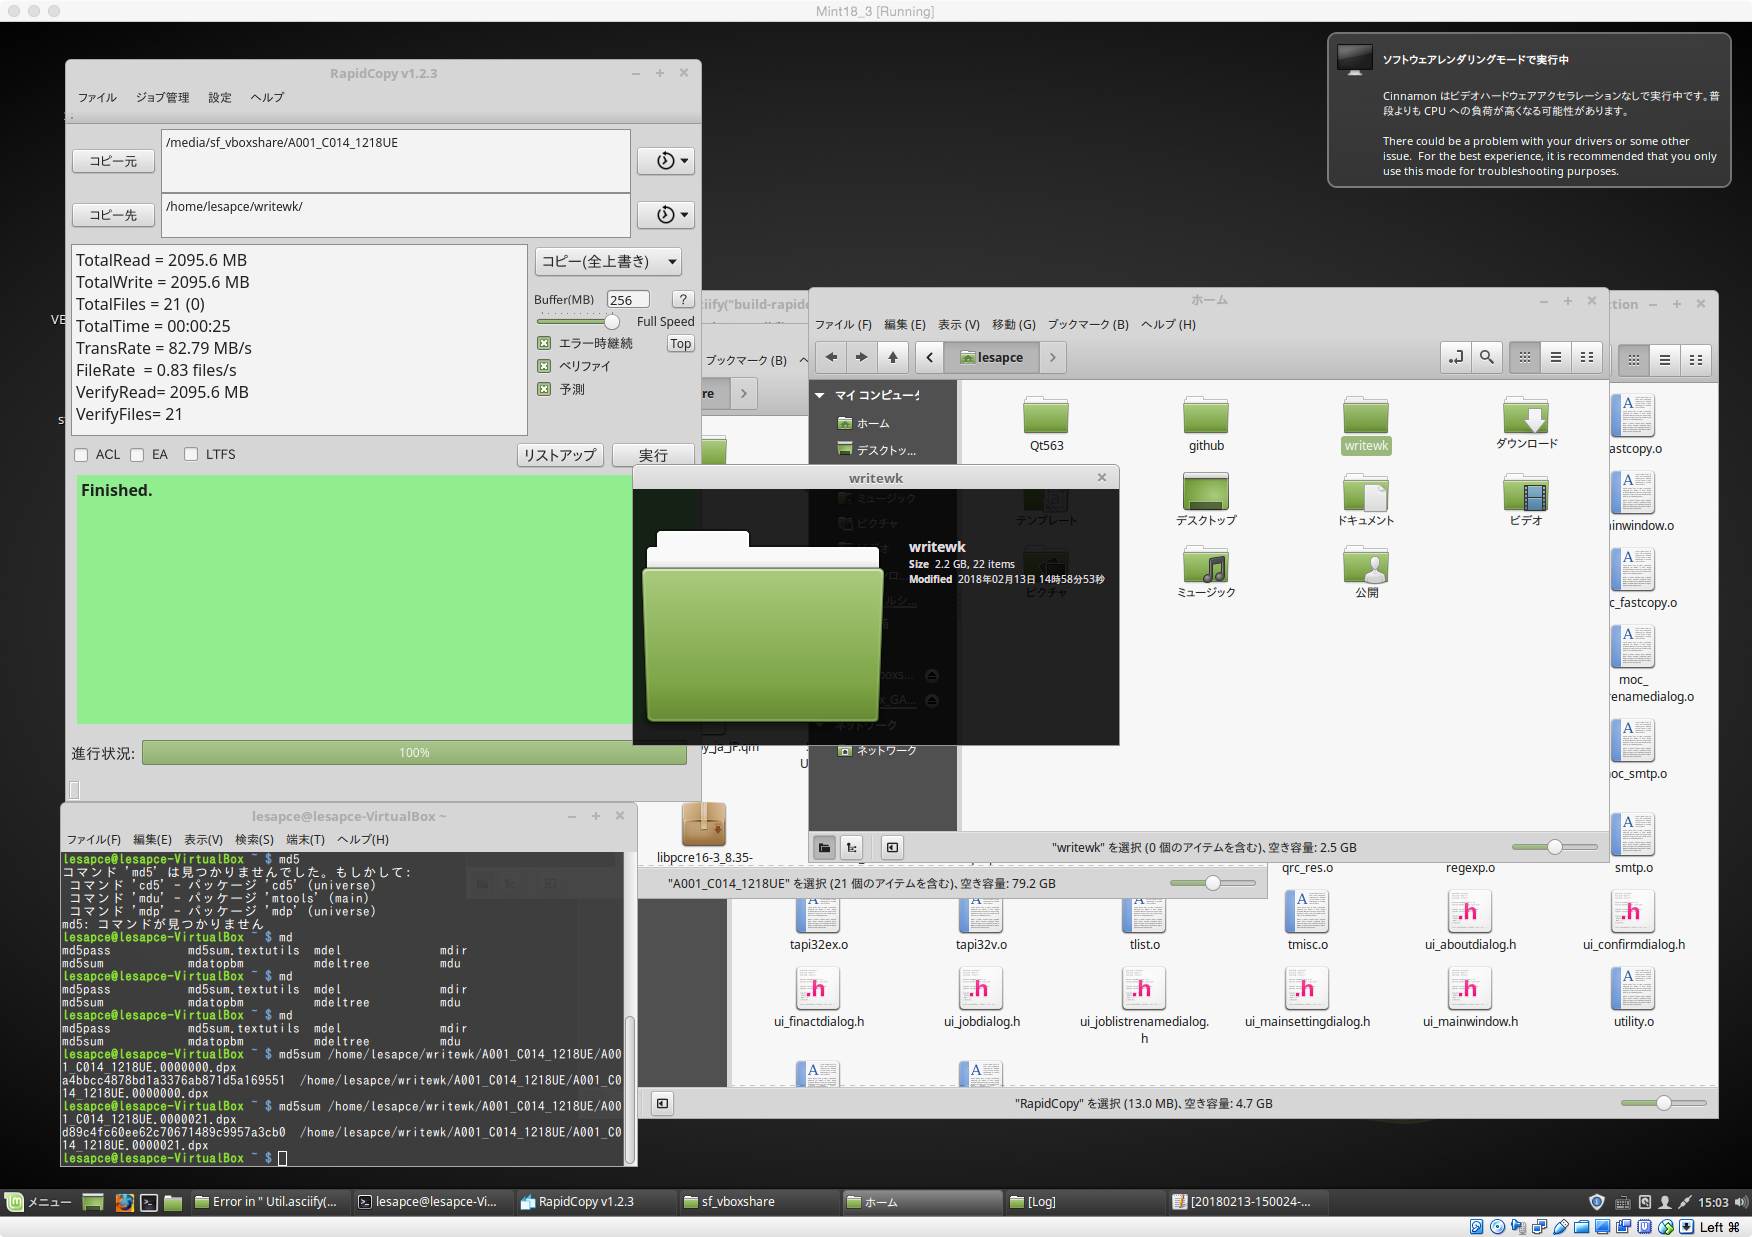 Unable to install in Linux Mint 18 3 · Issue #3 · KengoSawa2